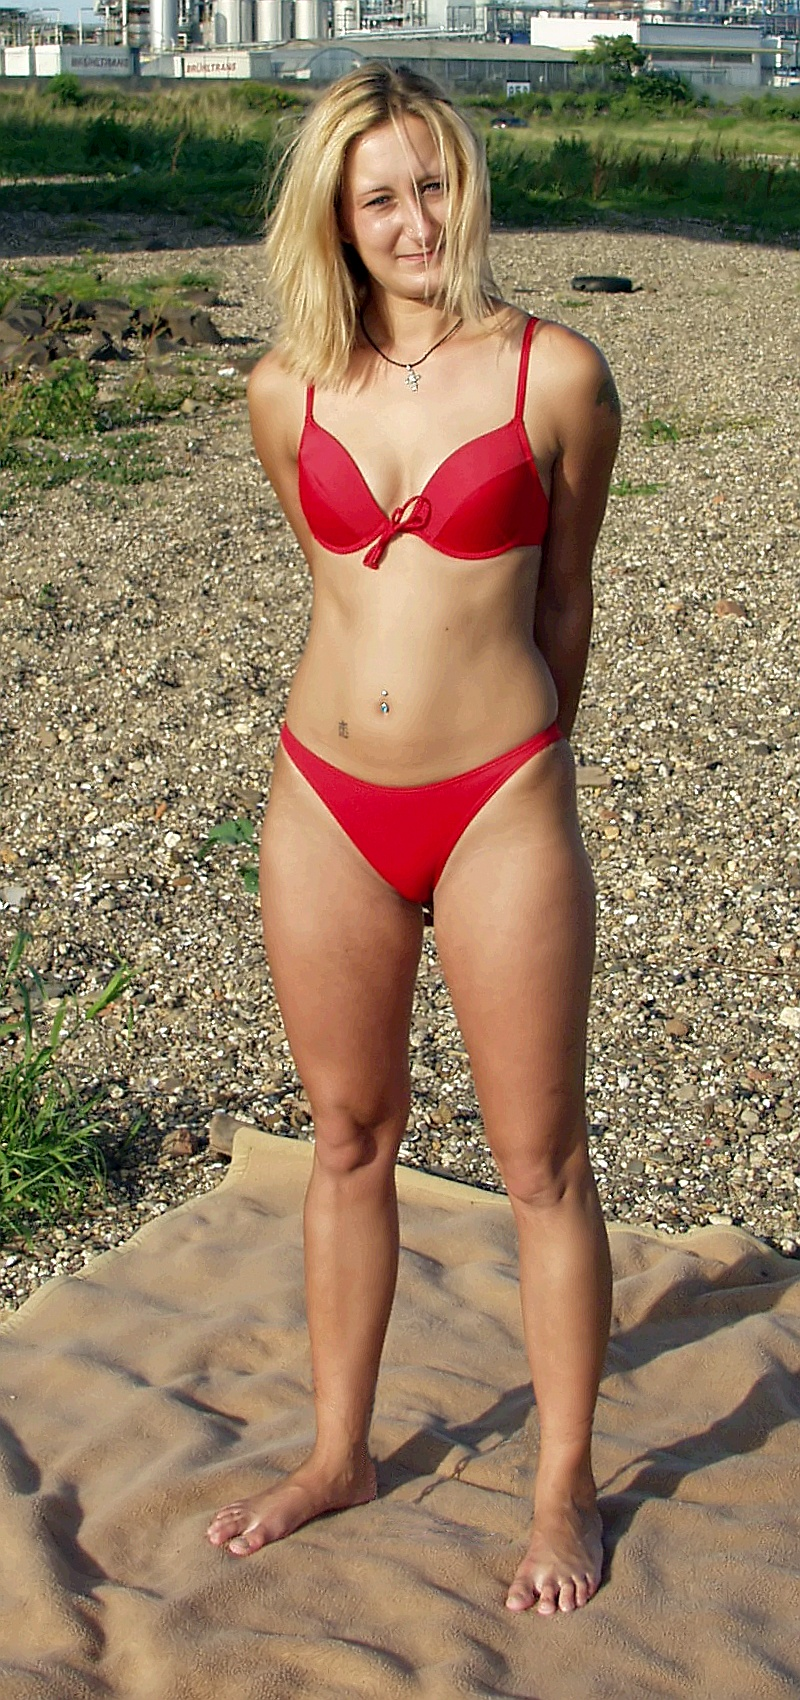 Woman wearing a bikini